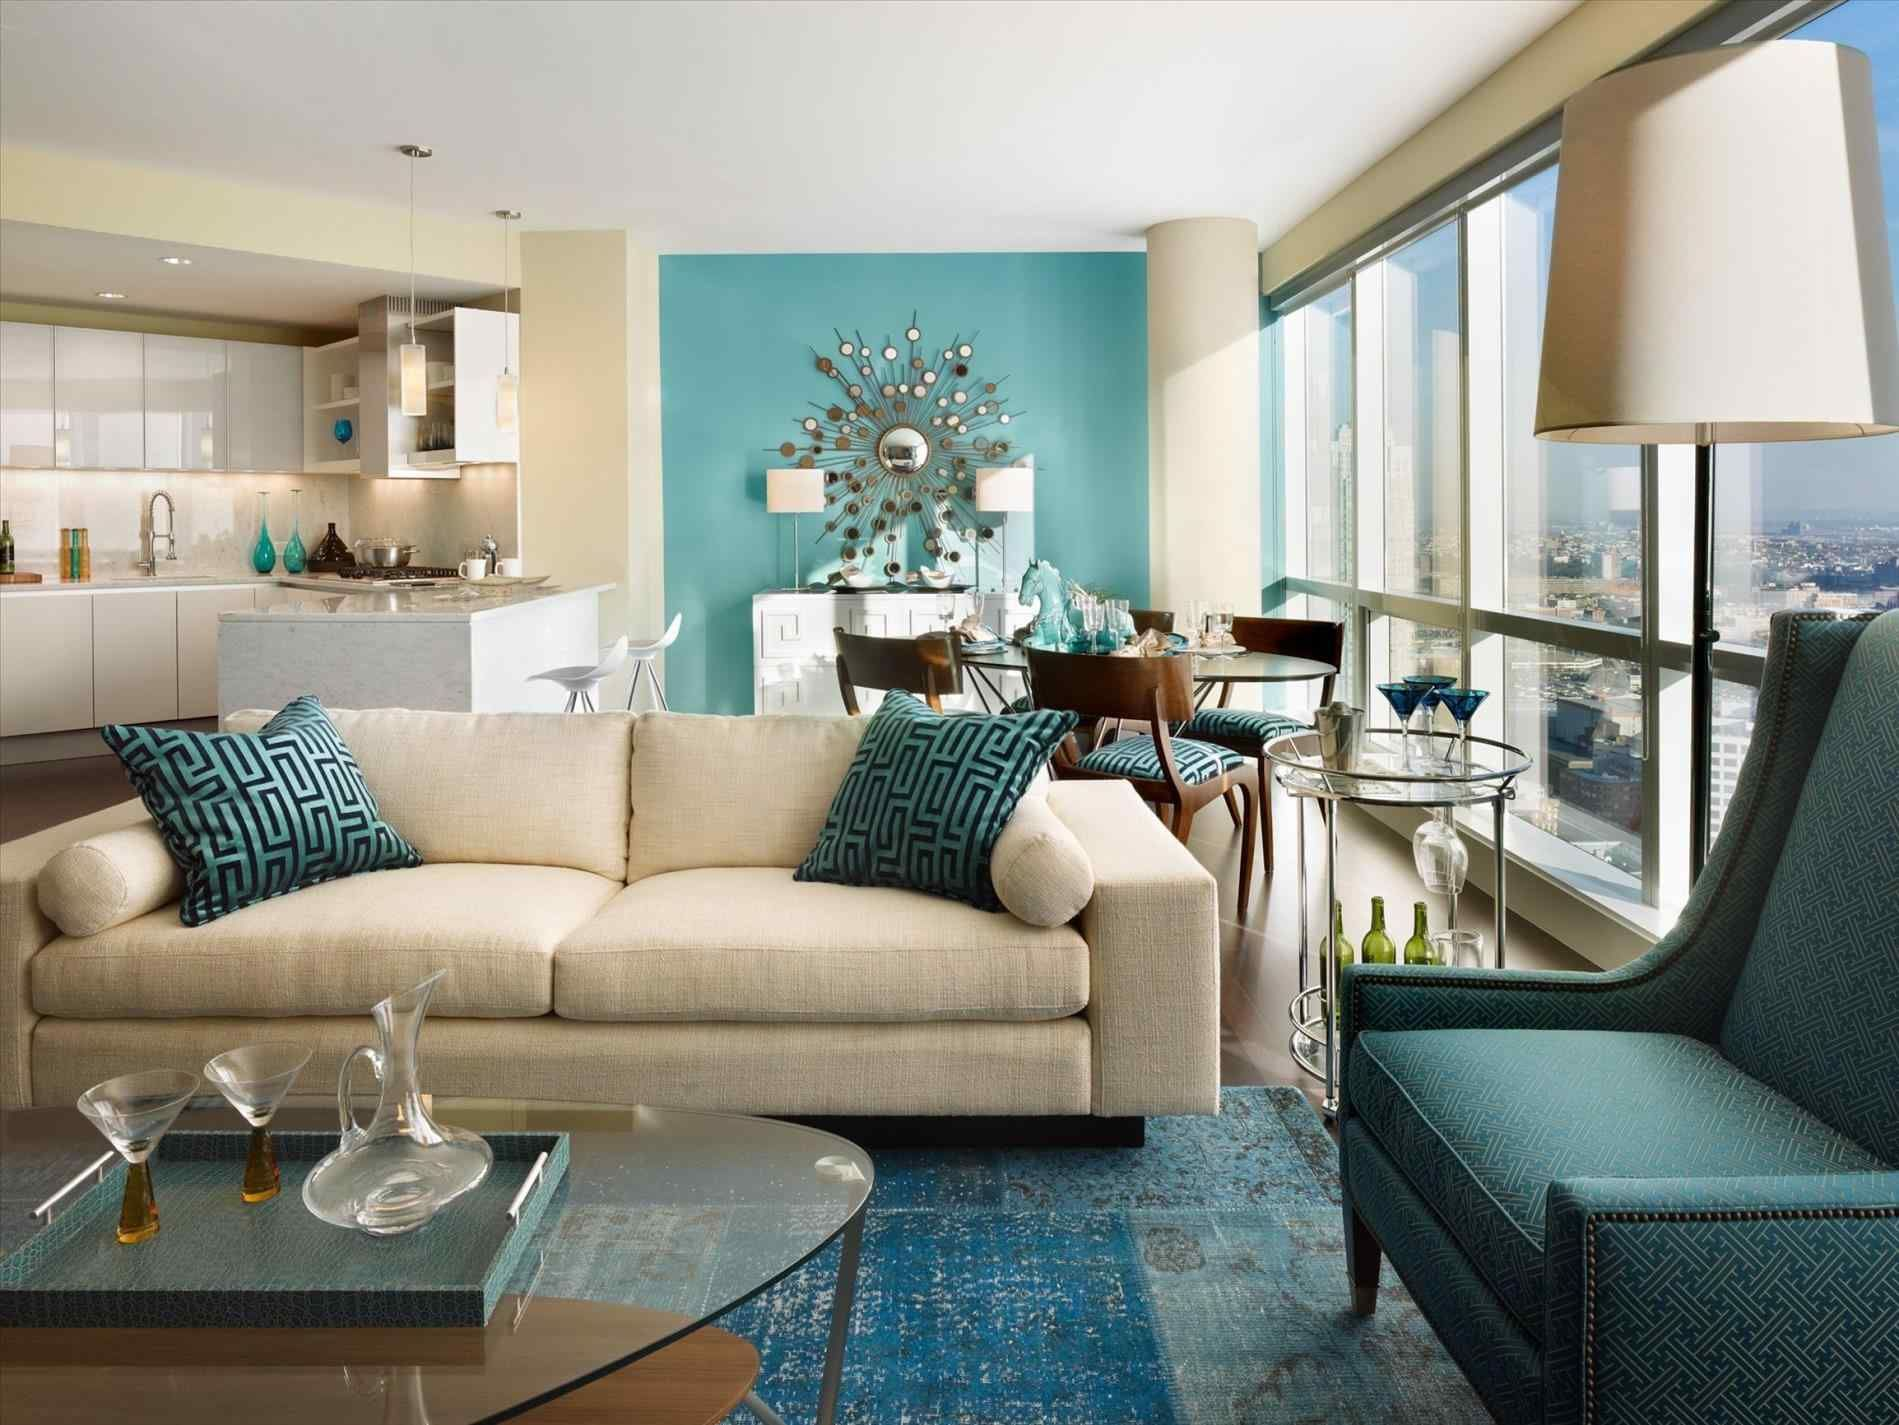 Amazing Home Decorating With Turquoise Accents Ideas ...